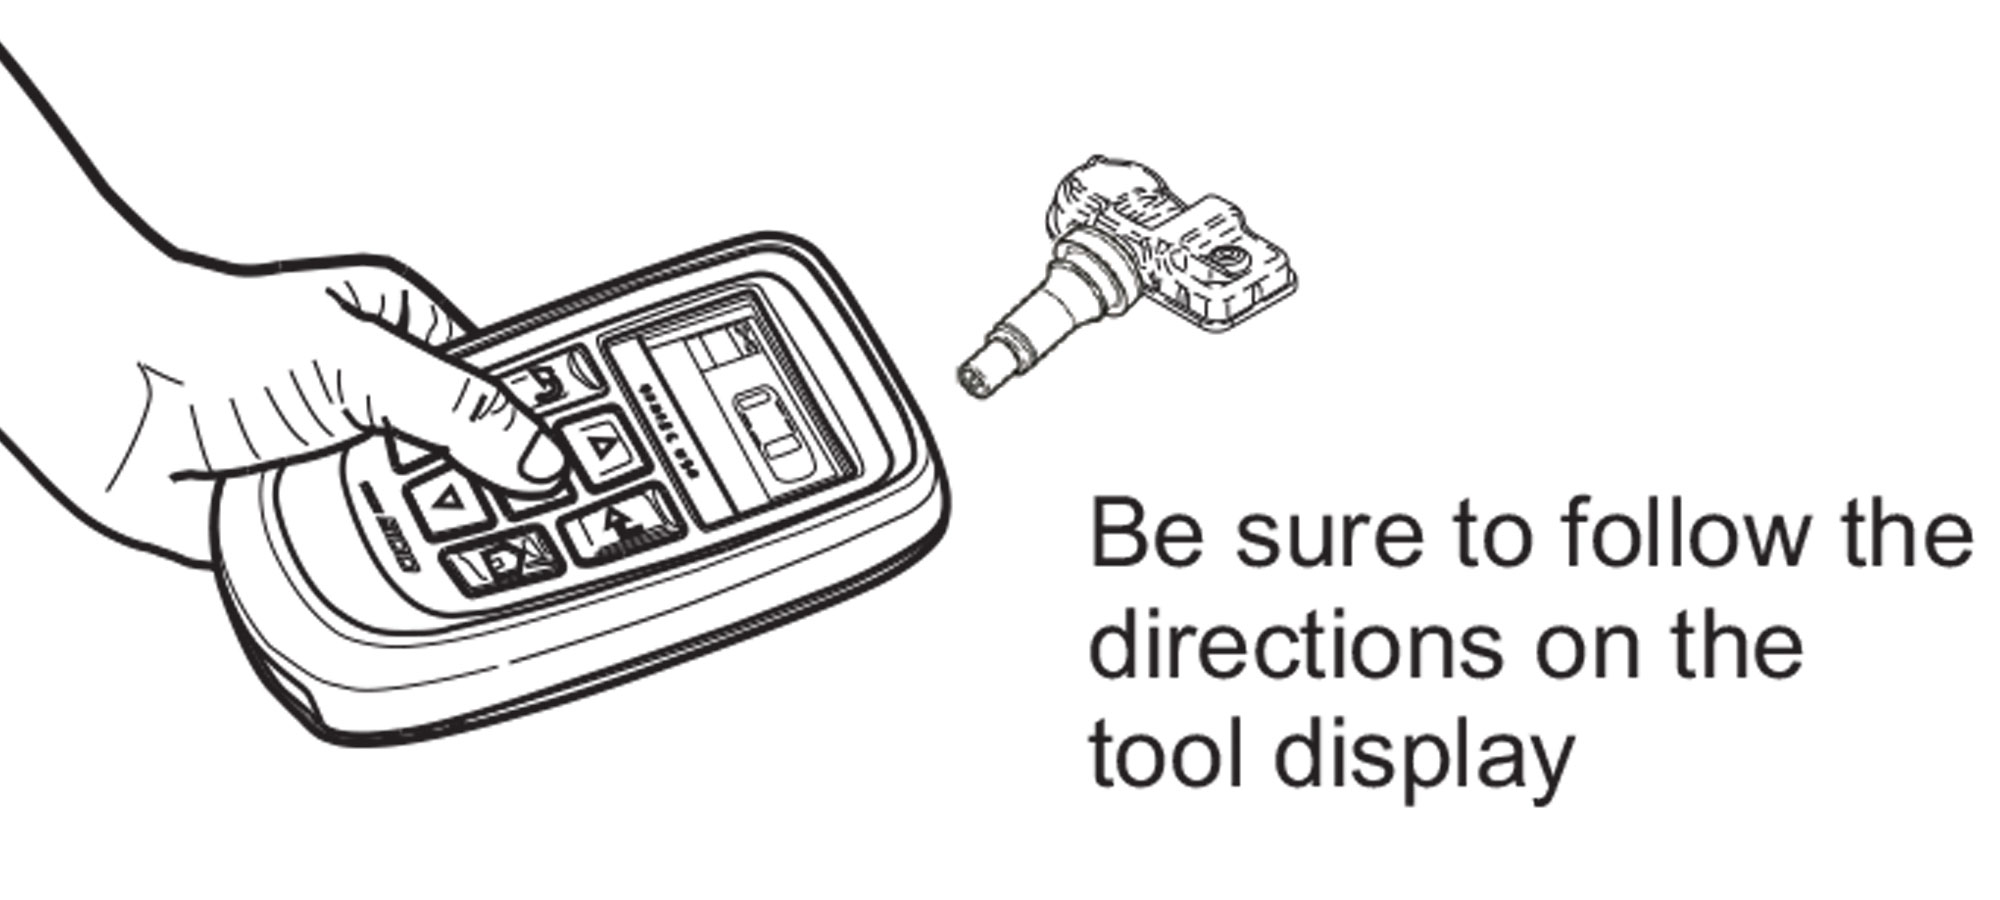 Program appropriate number of RITE-SENSORS using Bartec TPMS Tool